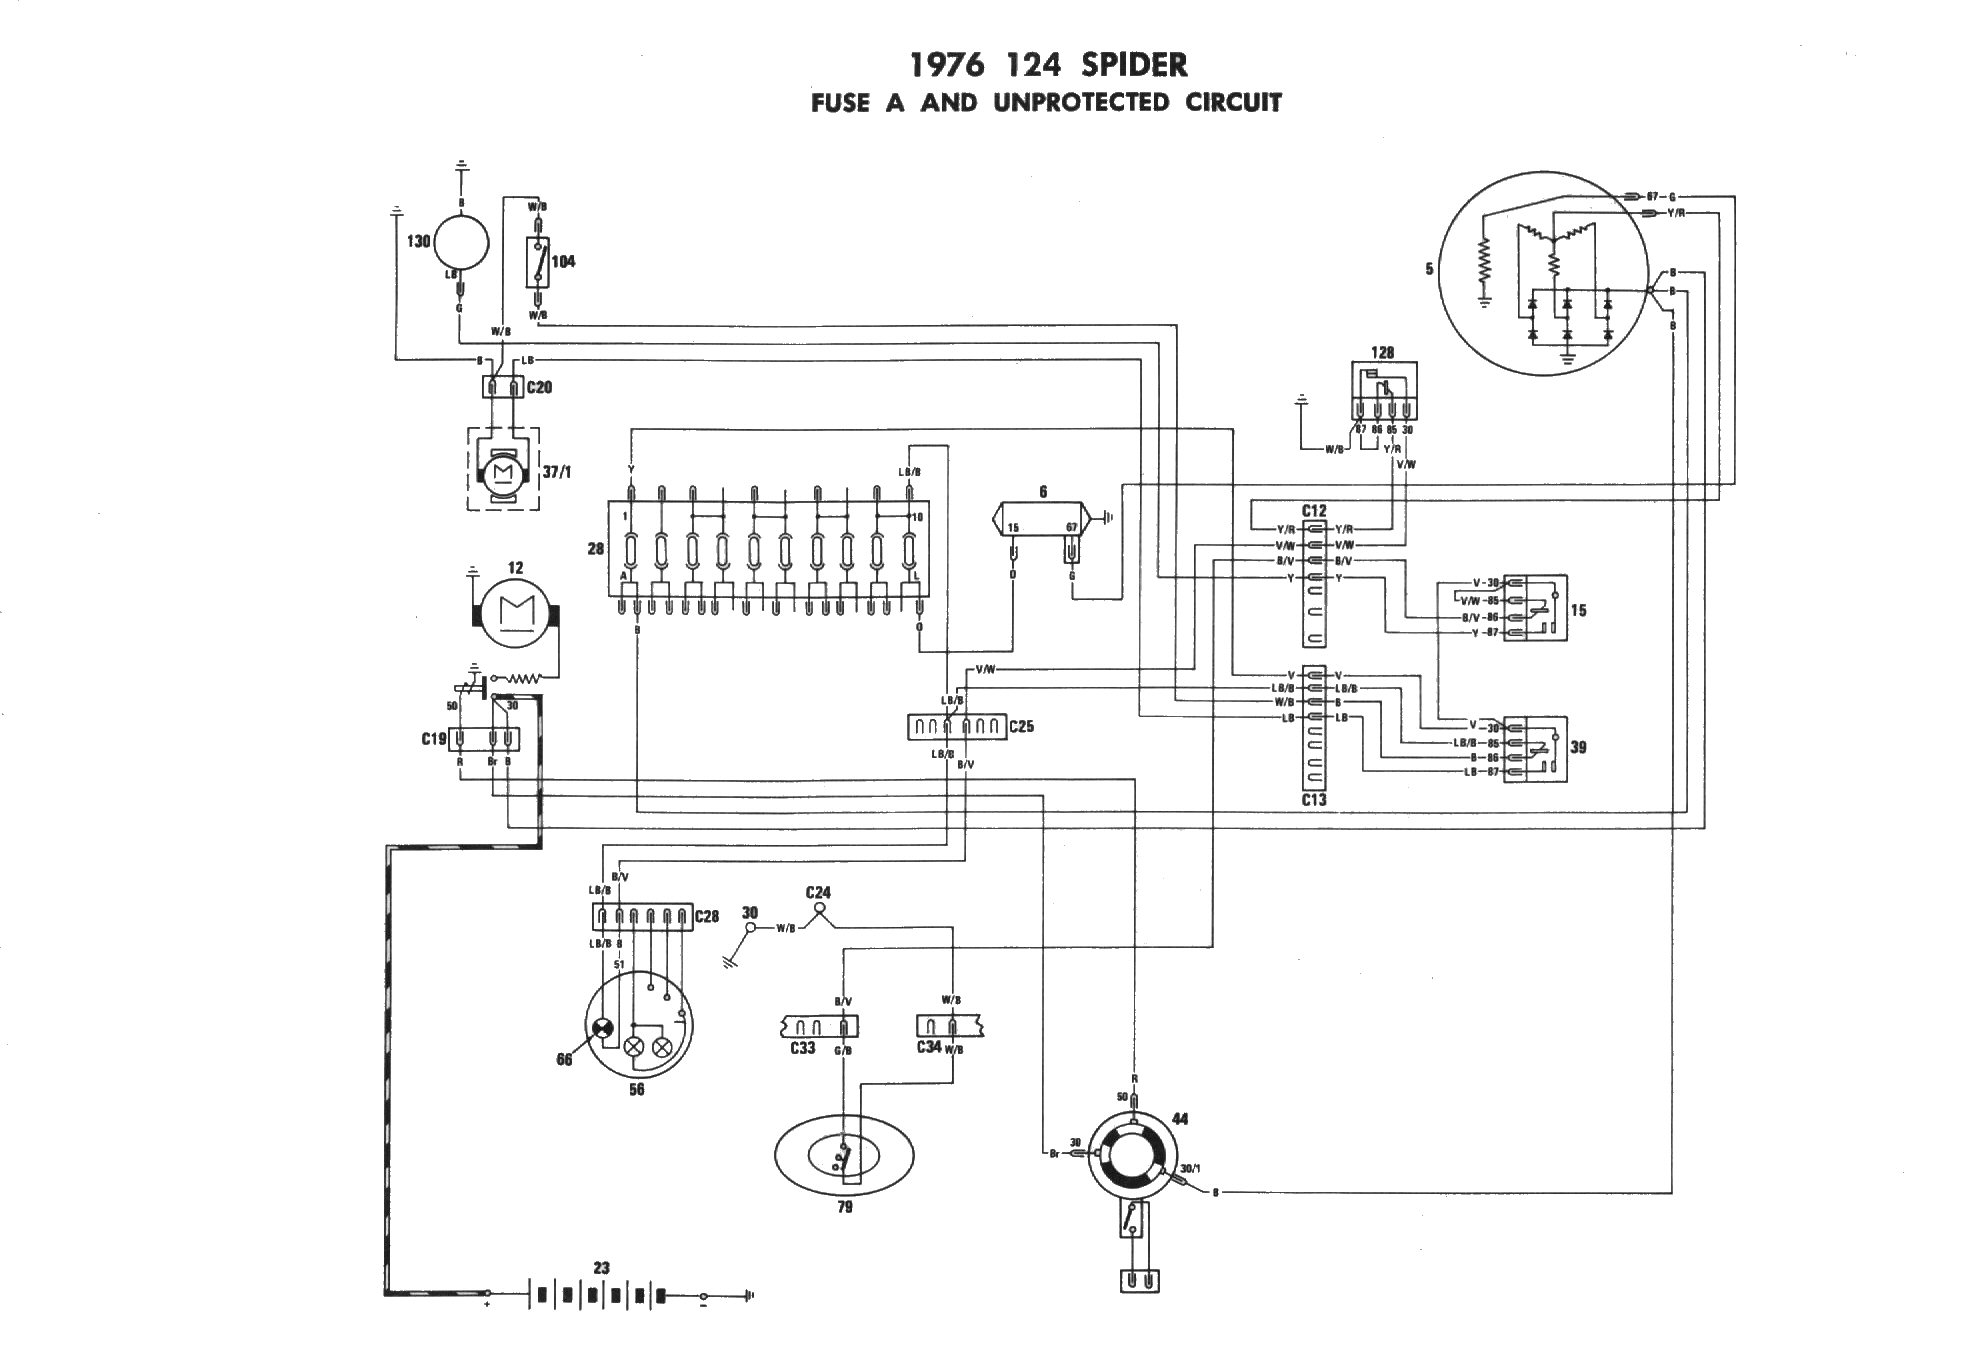 1978 Fiat Fuse Box Wiring Diagram Data Universal Dino Schema Diagrams Ritmo